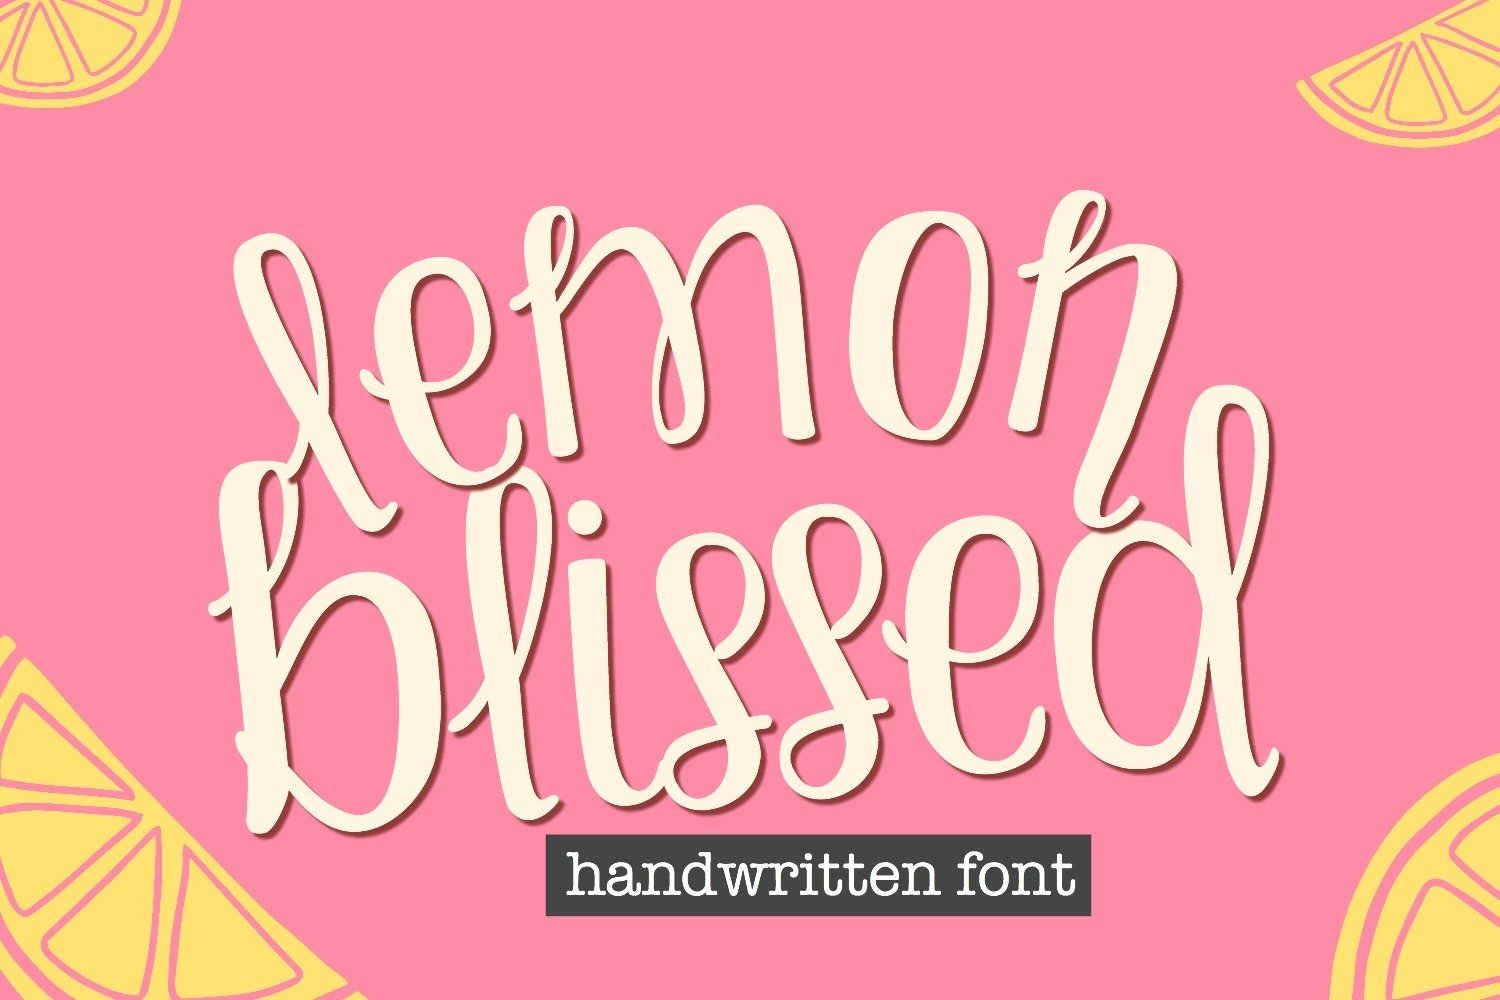 Crafter Handwritten Font Bundle- 7 Smooth Cuttable Fonts example image 26